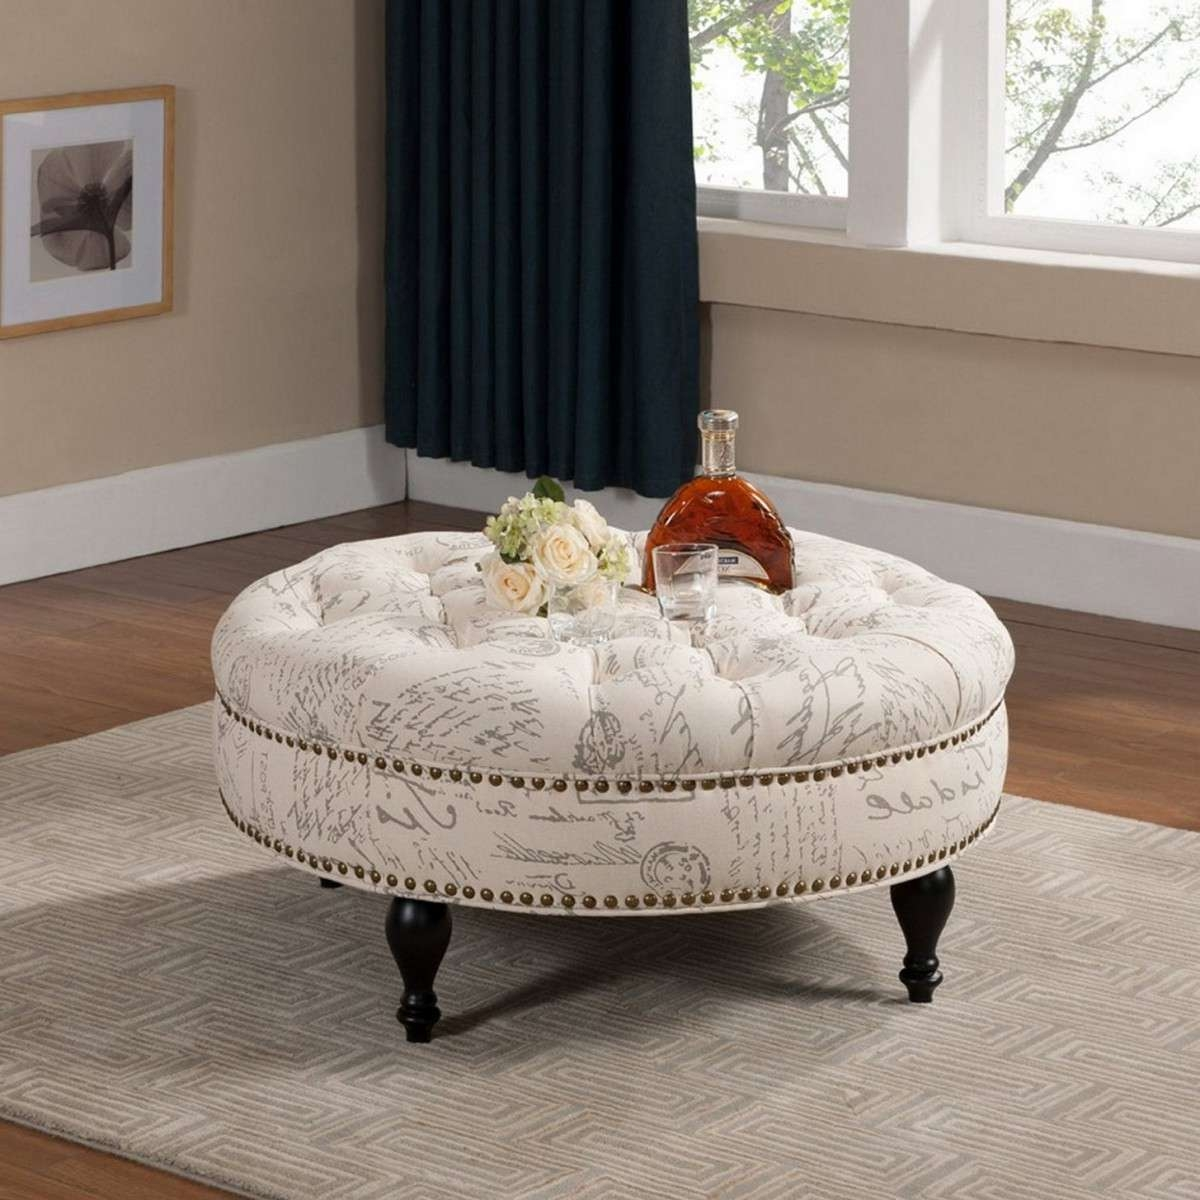 Round Ottoman Coffee Table Tray Decor Throughout Popular Round Coffee Table Trays (View 14 of 20)